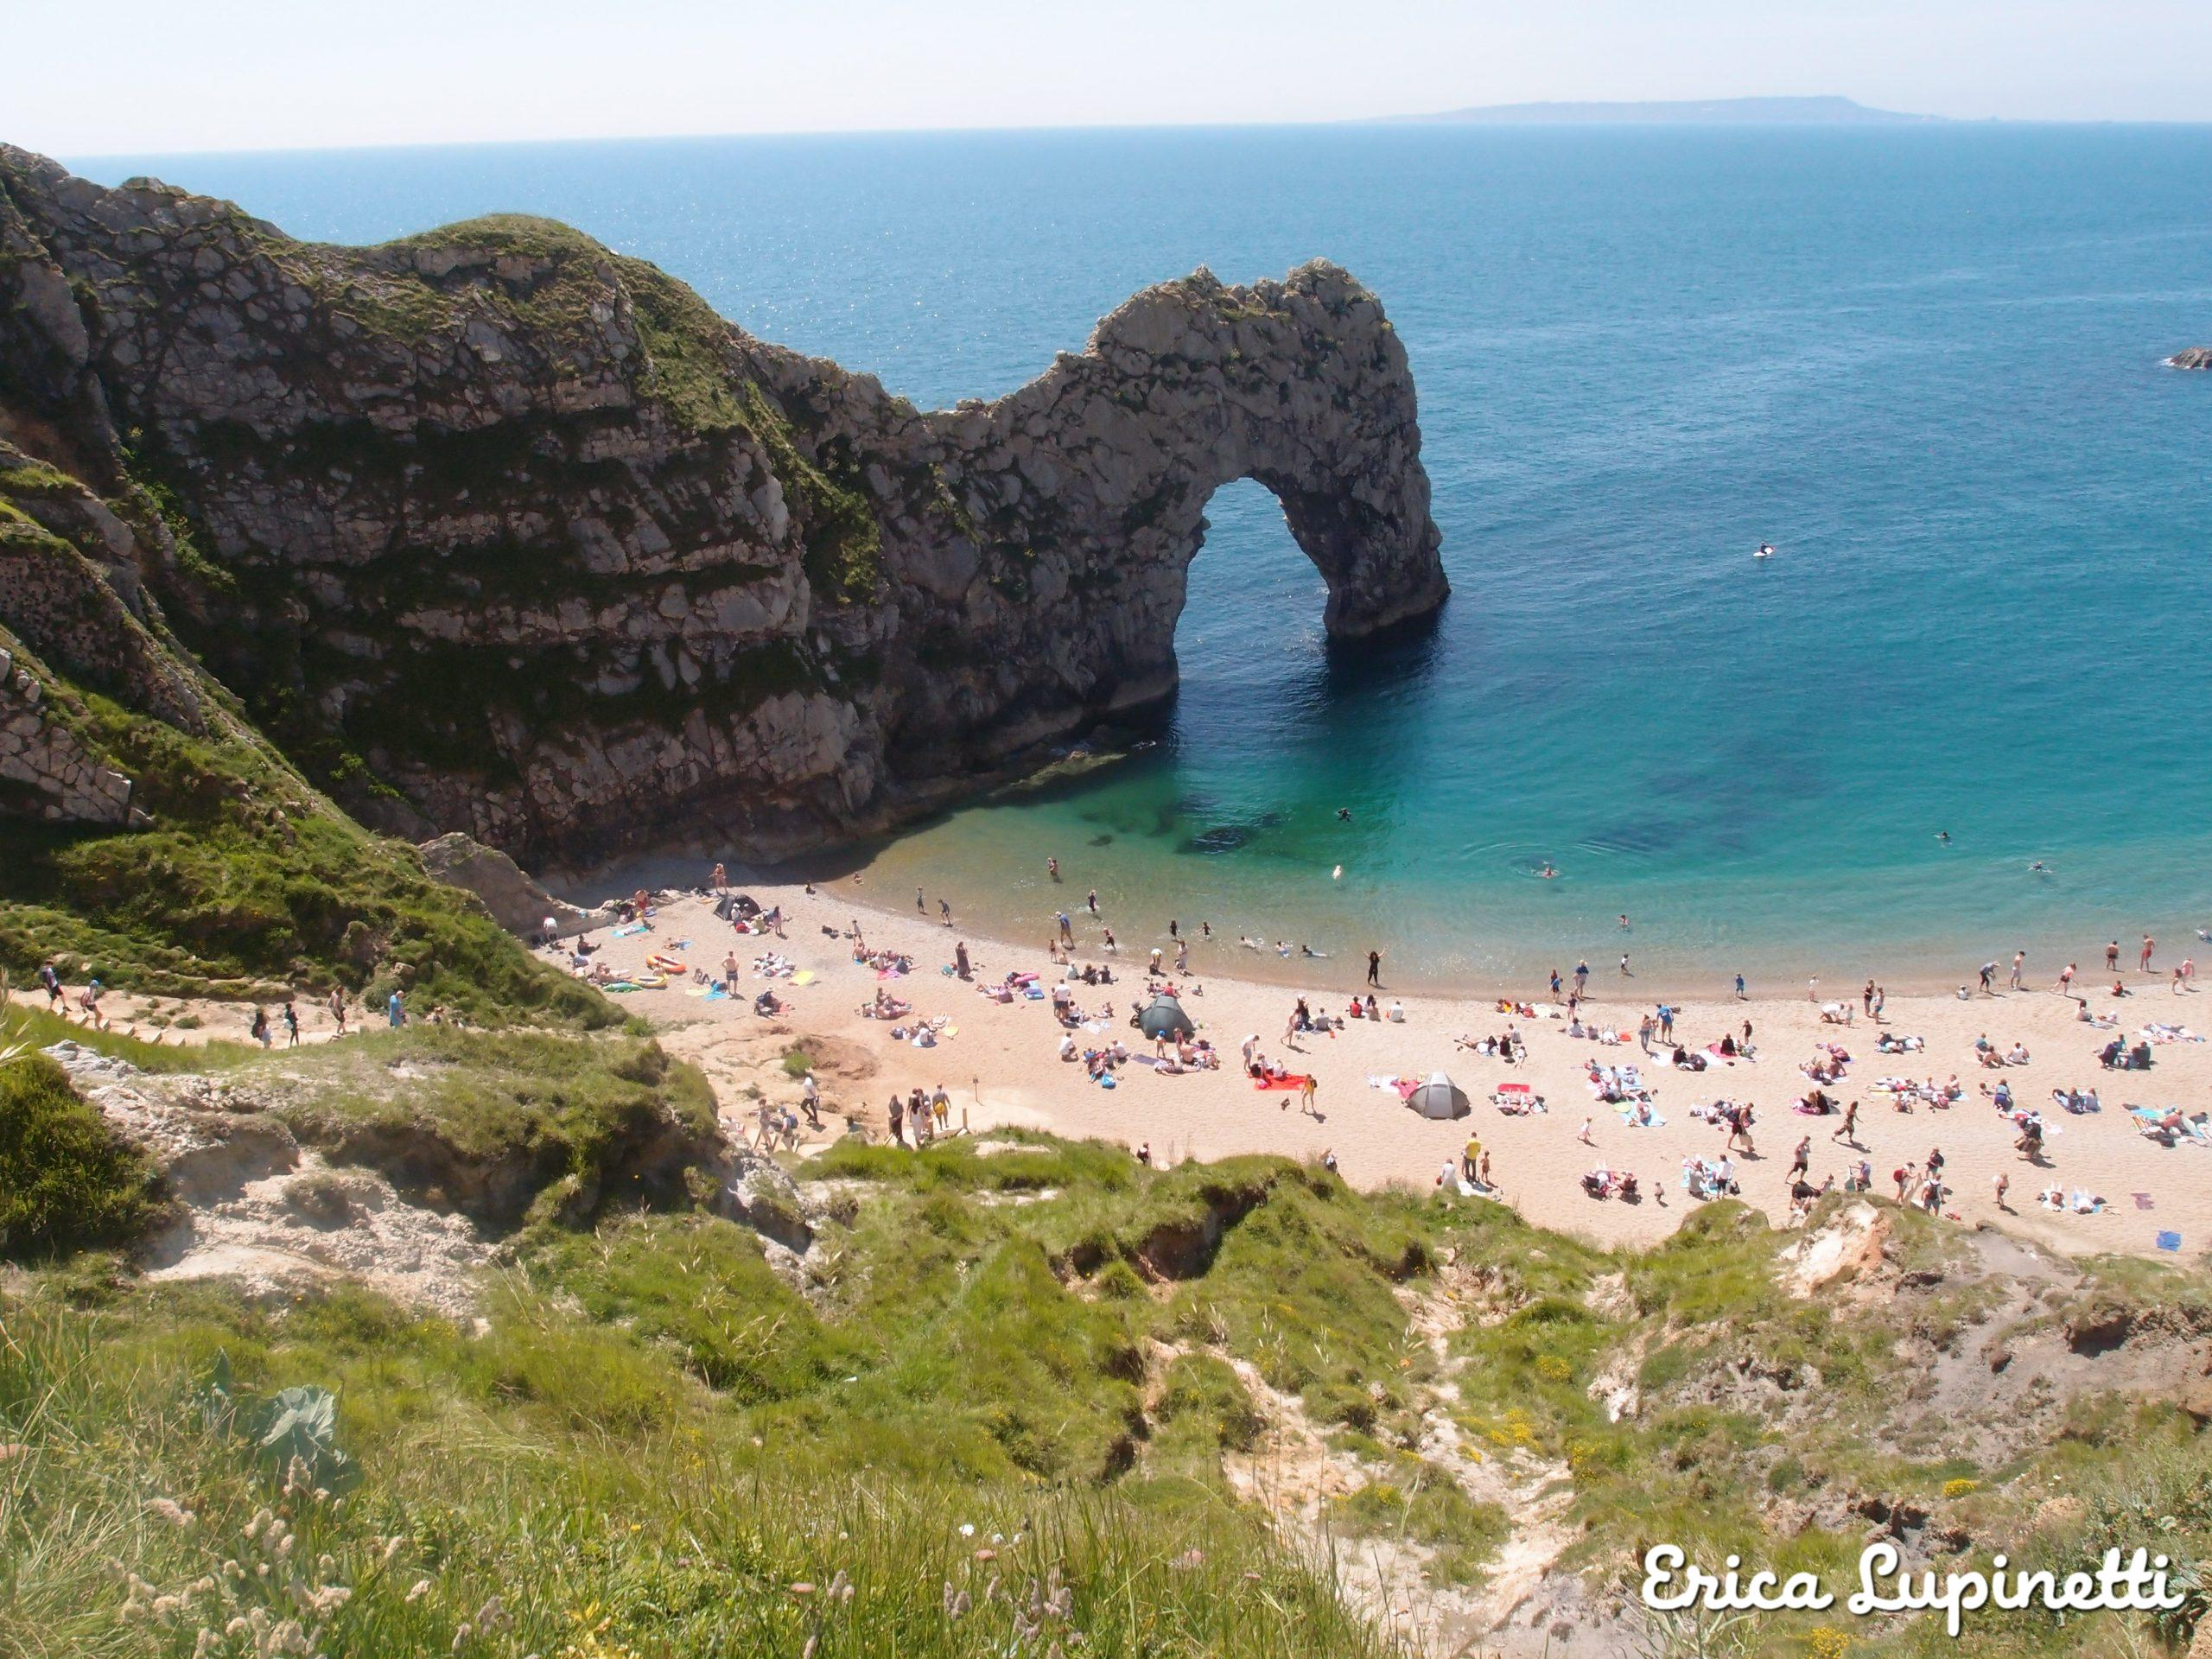 Durdle Door to Lulworth Cove Hike